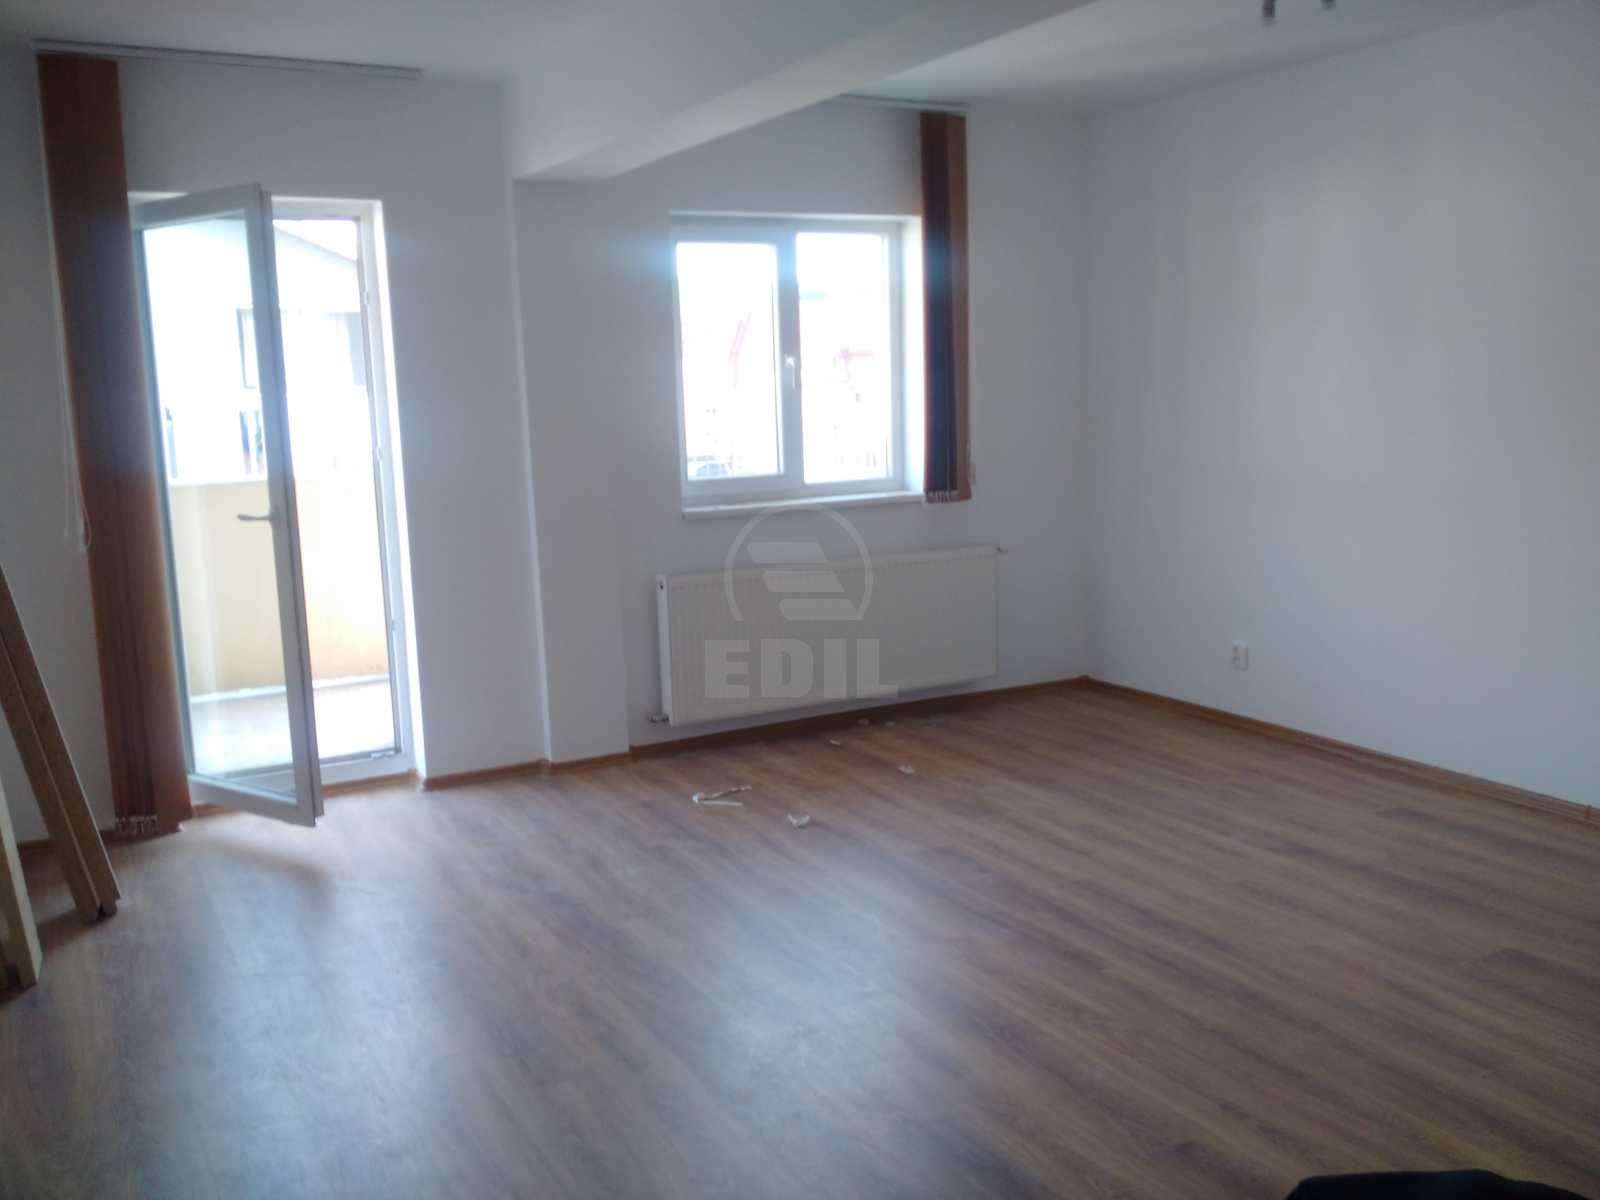 Apartment for rent 3 rooms, APCJ233199FLO-7